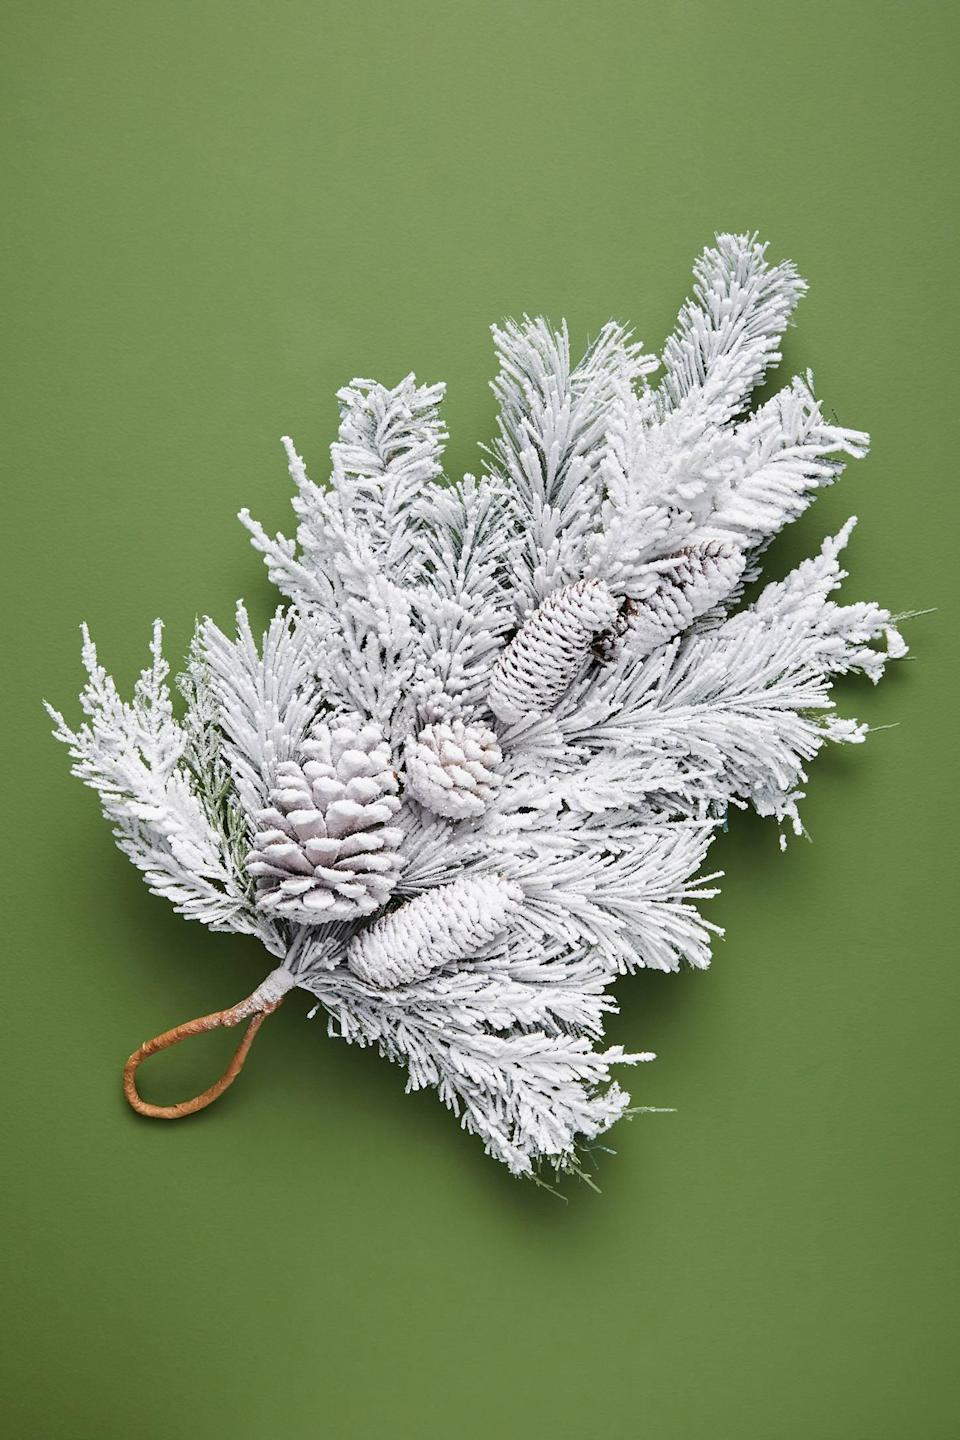 """<p>Bring the wintery feel of the outdoors inside with the <a href=""""https://www.popsugar.com/buy/Flocked-Pinecone-Swag-490506?p_name=Flocked%20Pinecone%20Swag&retailer=anthropologie.com&pid=490506&price=44&evar1=casa%3Aus&evar9=46615300&evar98=https%3A%2F%2Fwww.popsugar.com%2Fhome%2Fphoto-gallery%2F46615300%2Fimage%2F46615376%2FFlocked-Pinecone-Swag&list1=shopping%2Canthropologie%2Choliday%2Cchristmas%2Cchristmas%20decorations%2Choliday%20decor%2Chome%20shopping&prop13=mobile&pdata=1"""" rel=""""nofollow noopener"""" class=""""link rapid-noclick-resp"""" target=""""_blank"""" data-ylk=""""slk:Flocked Pinecone Swag"""">Flocked Pinecone Swag</a> ($44).</p>"""